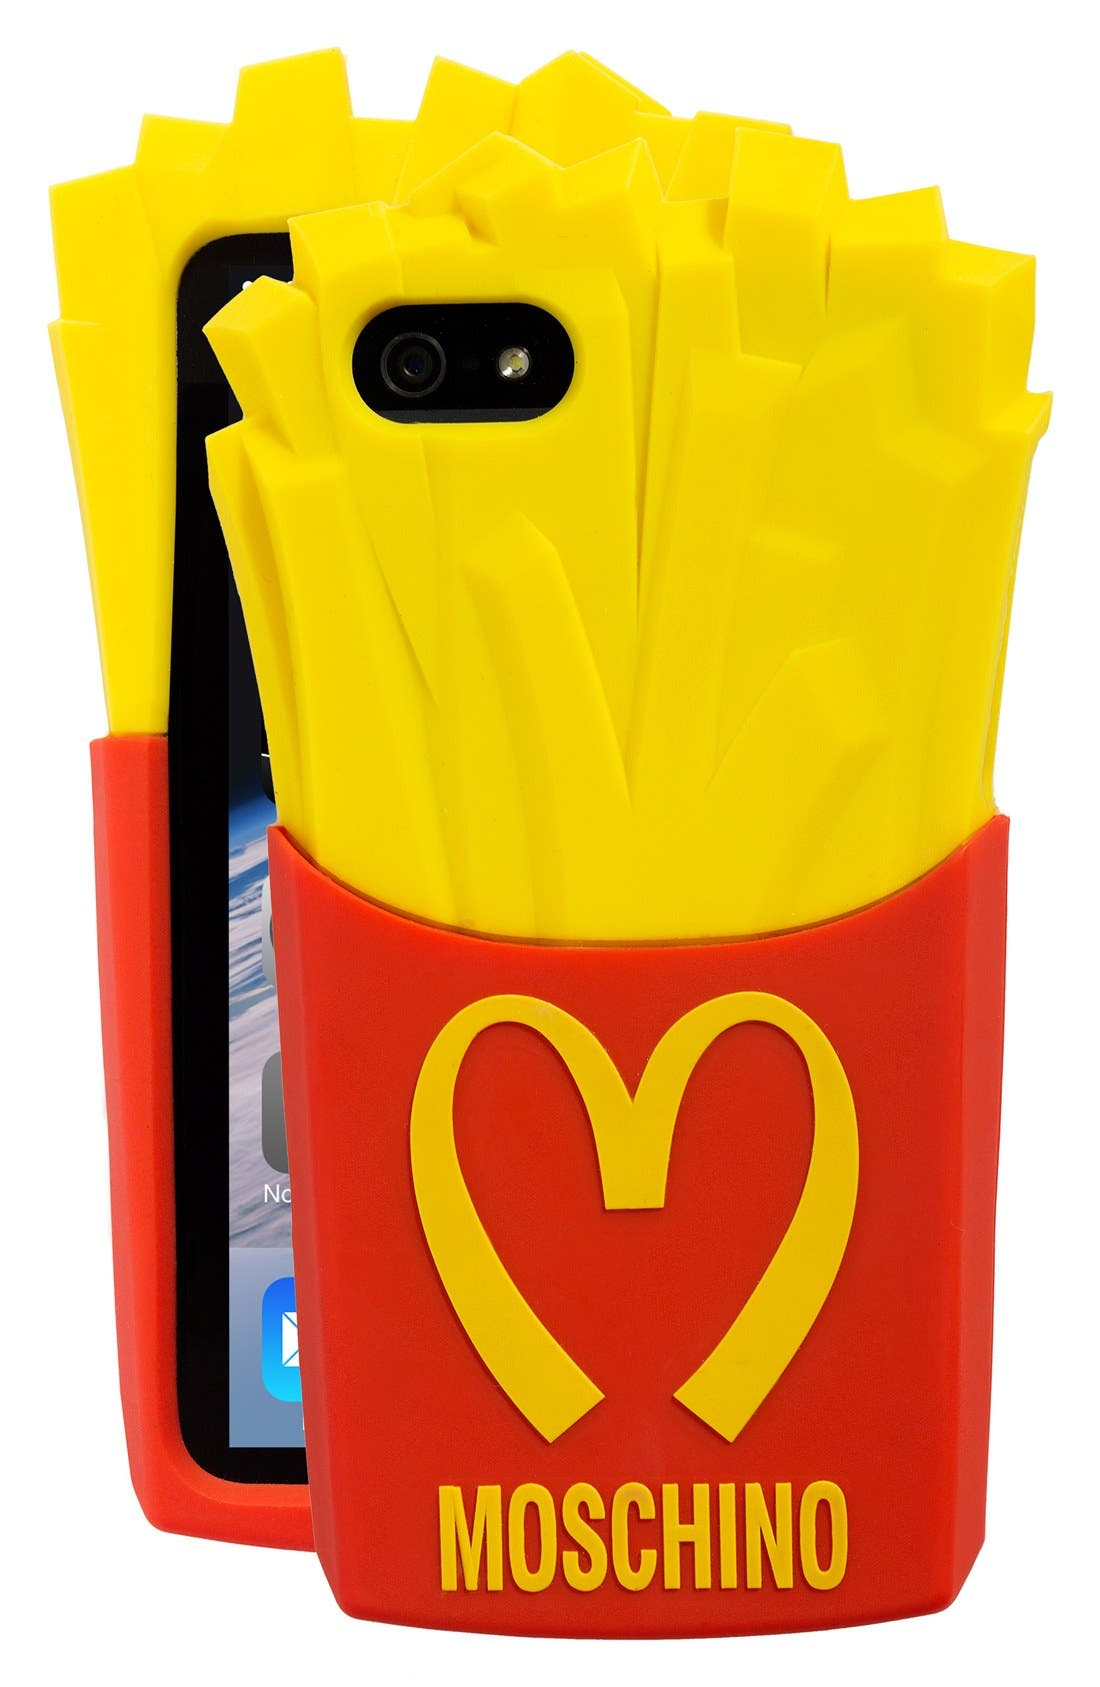 Alternate Image 1 Selected - Moschino 'Fast Food' iPhone 5 Case